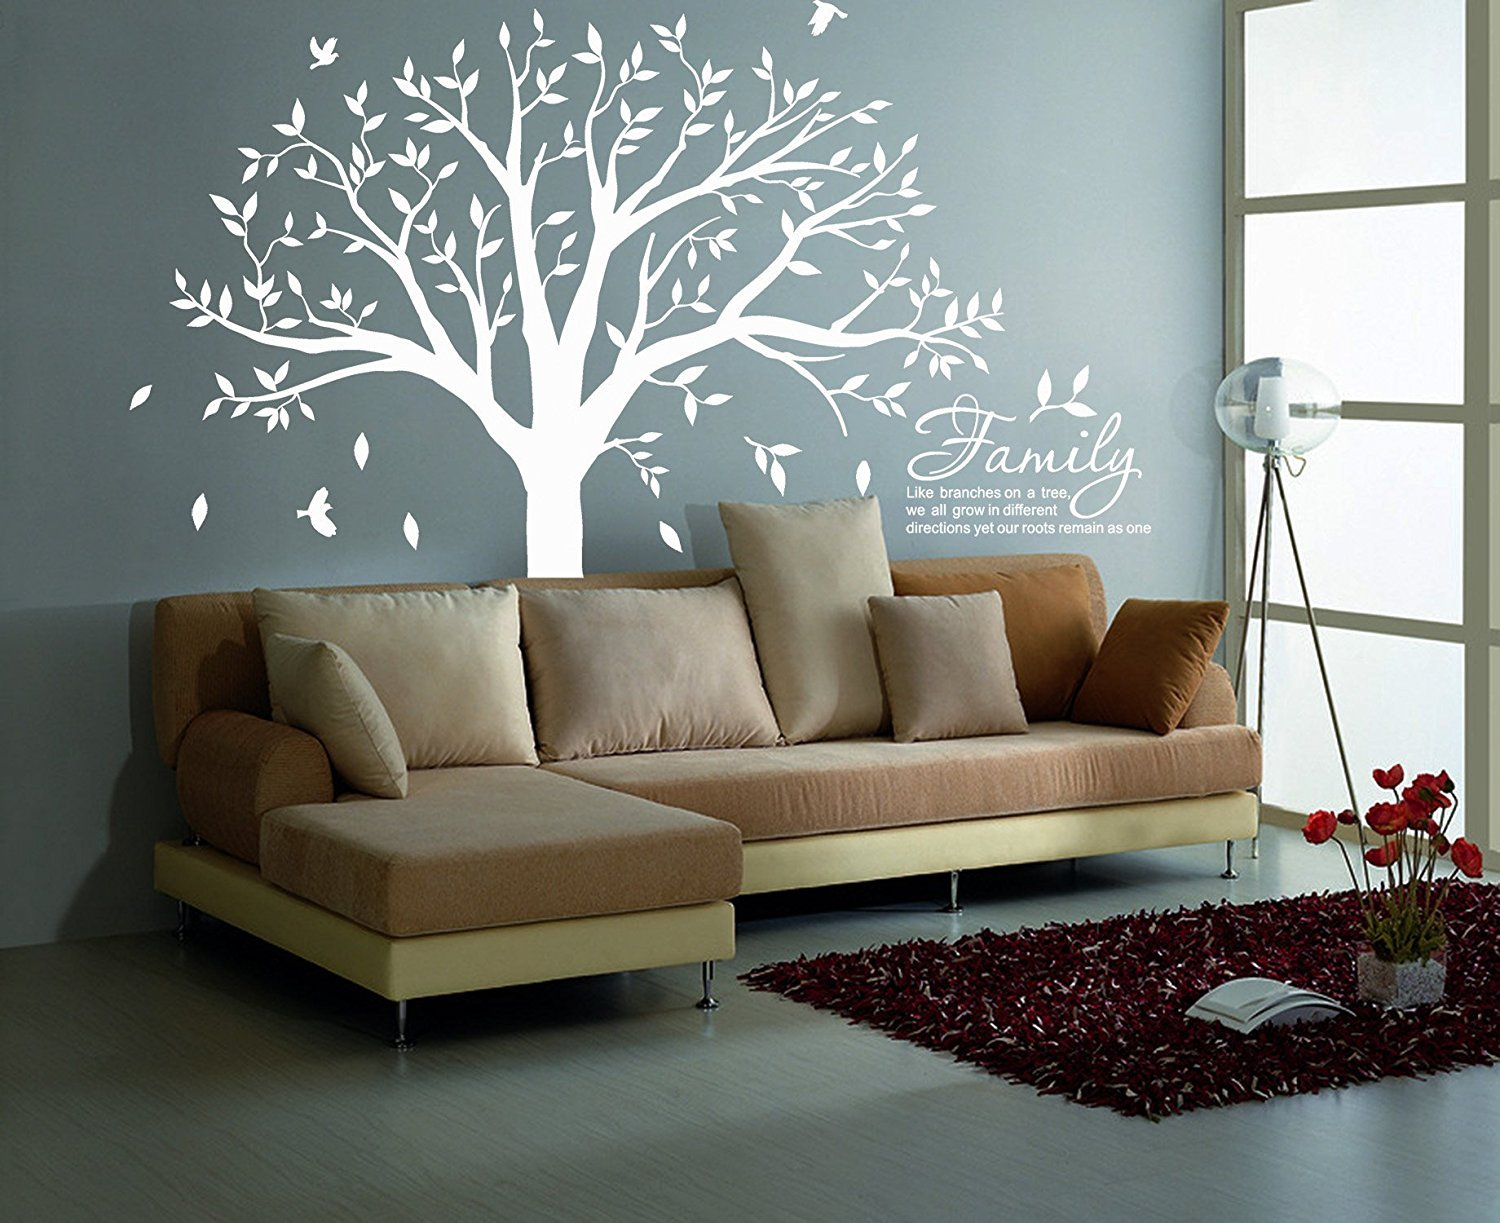 MAFENT Family Tree Wall Decal Quote- Family Like Branches On A Tree Lettering Tree Wall Sticker for Bedroom Decoration (White) by MAFENT (Image #4)